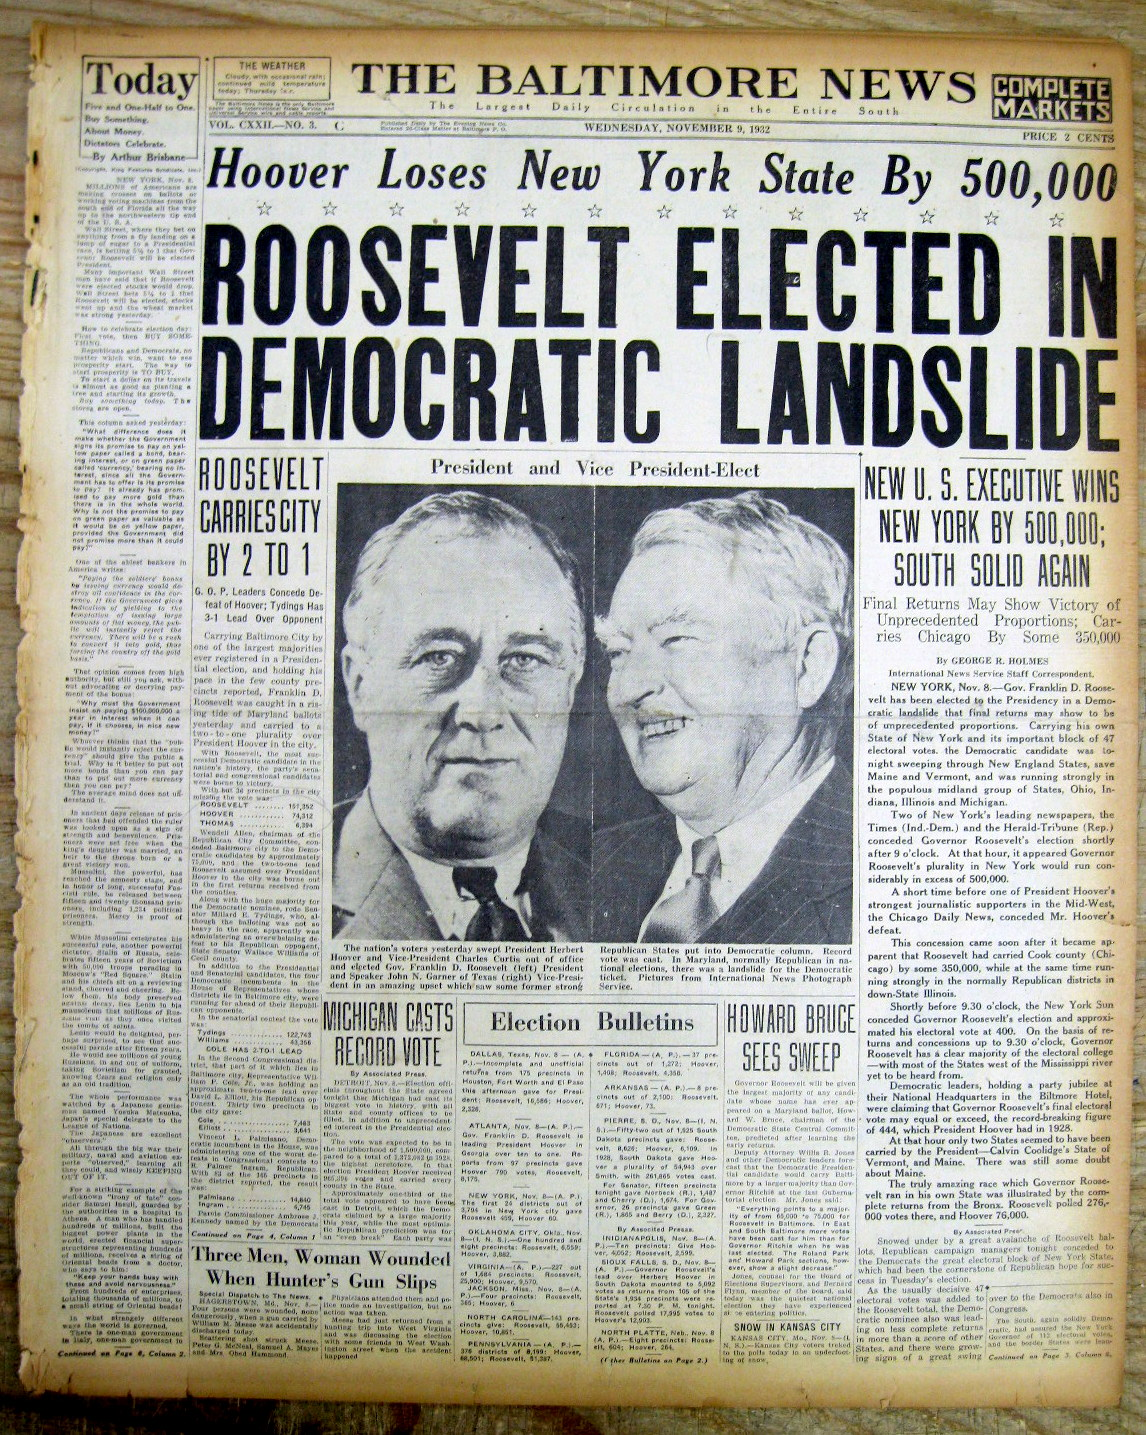 why did roosevelt win the election in 1932 essay Why did franklin d roosevelt win the 1932 presidential election by such a large margin.